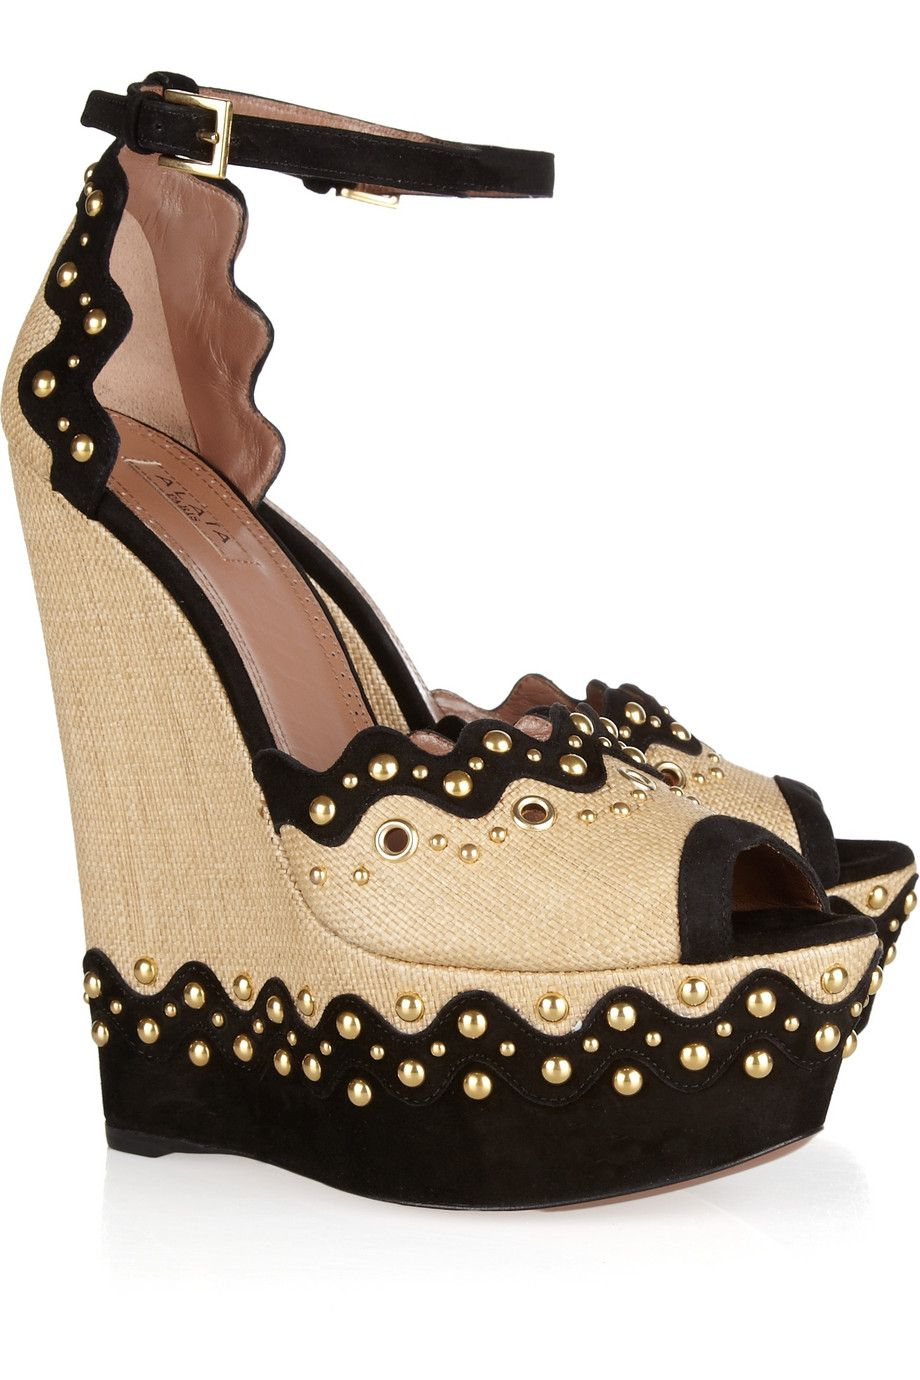 552dc00bfc4 Alaïa Paille Glamour embellished raffia and suede wedge sandals - 49% Off  Now at THE OUTNET